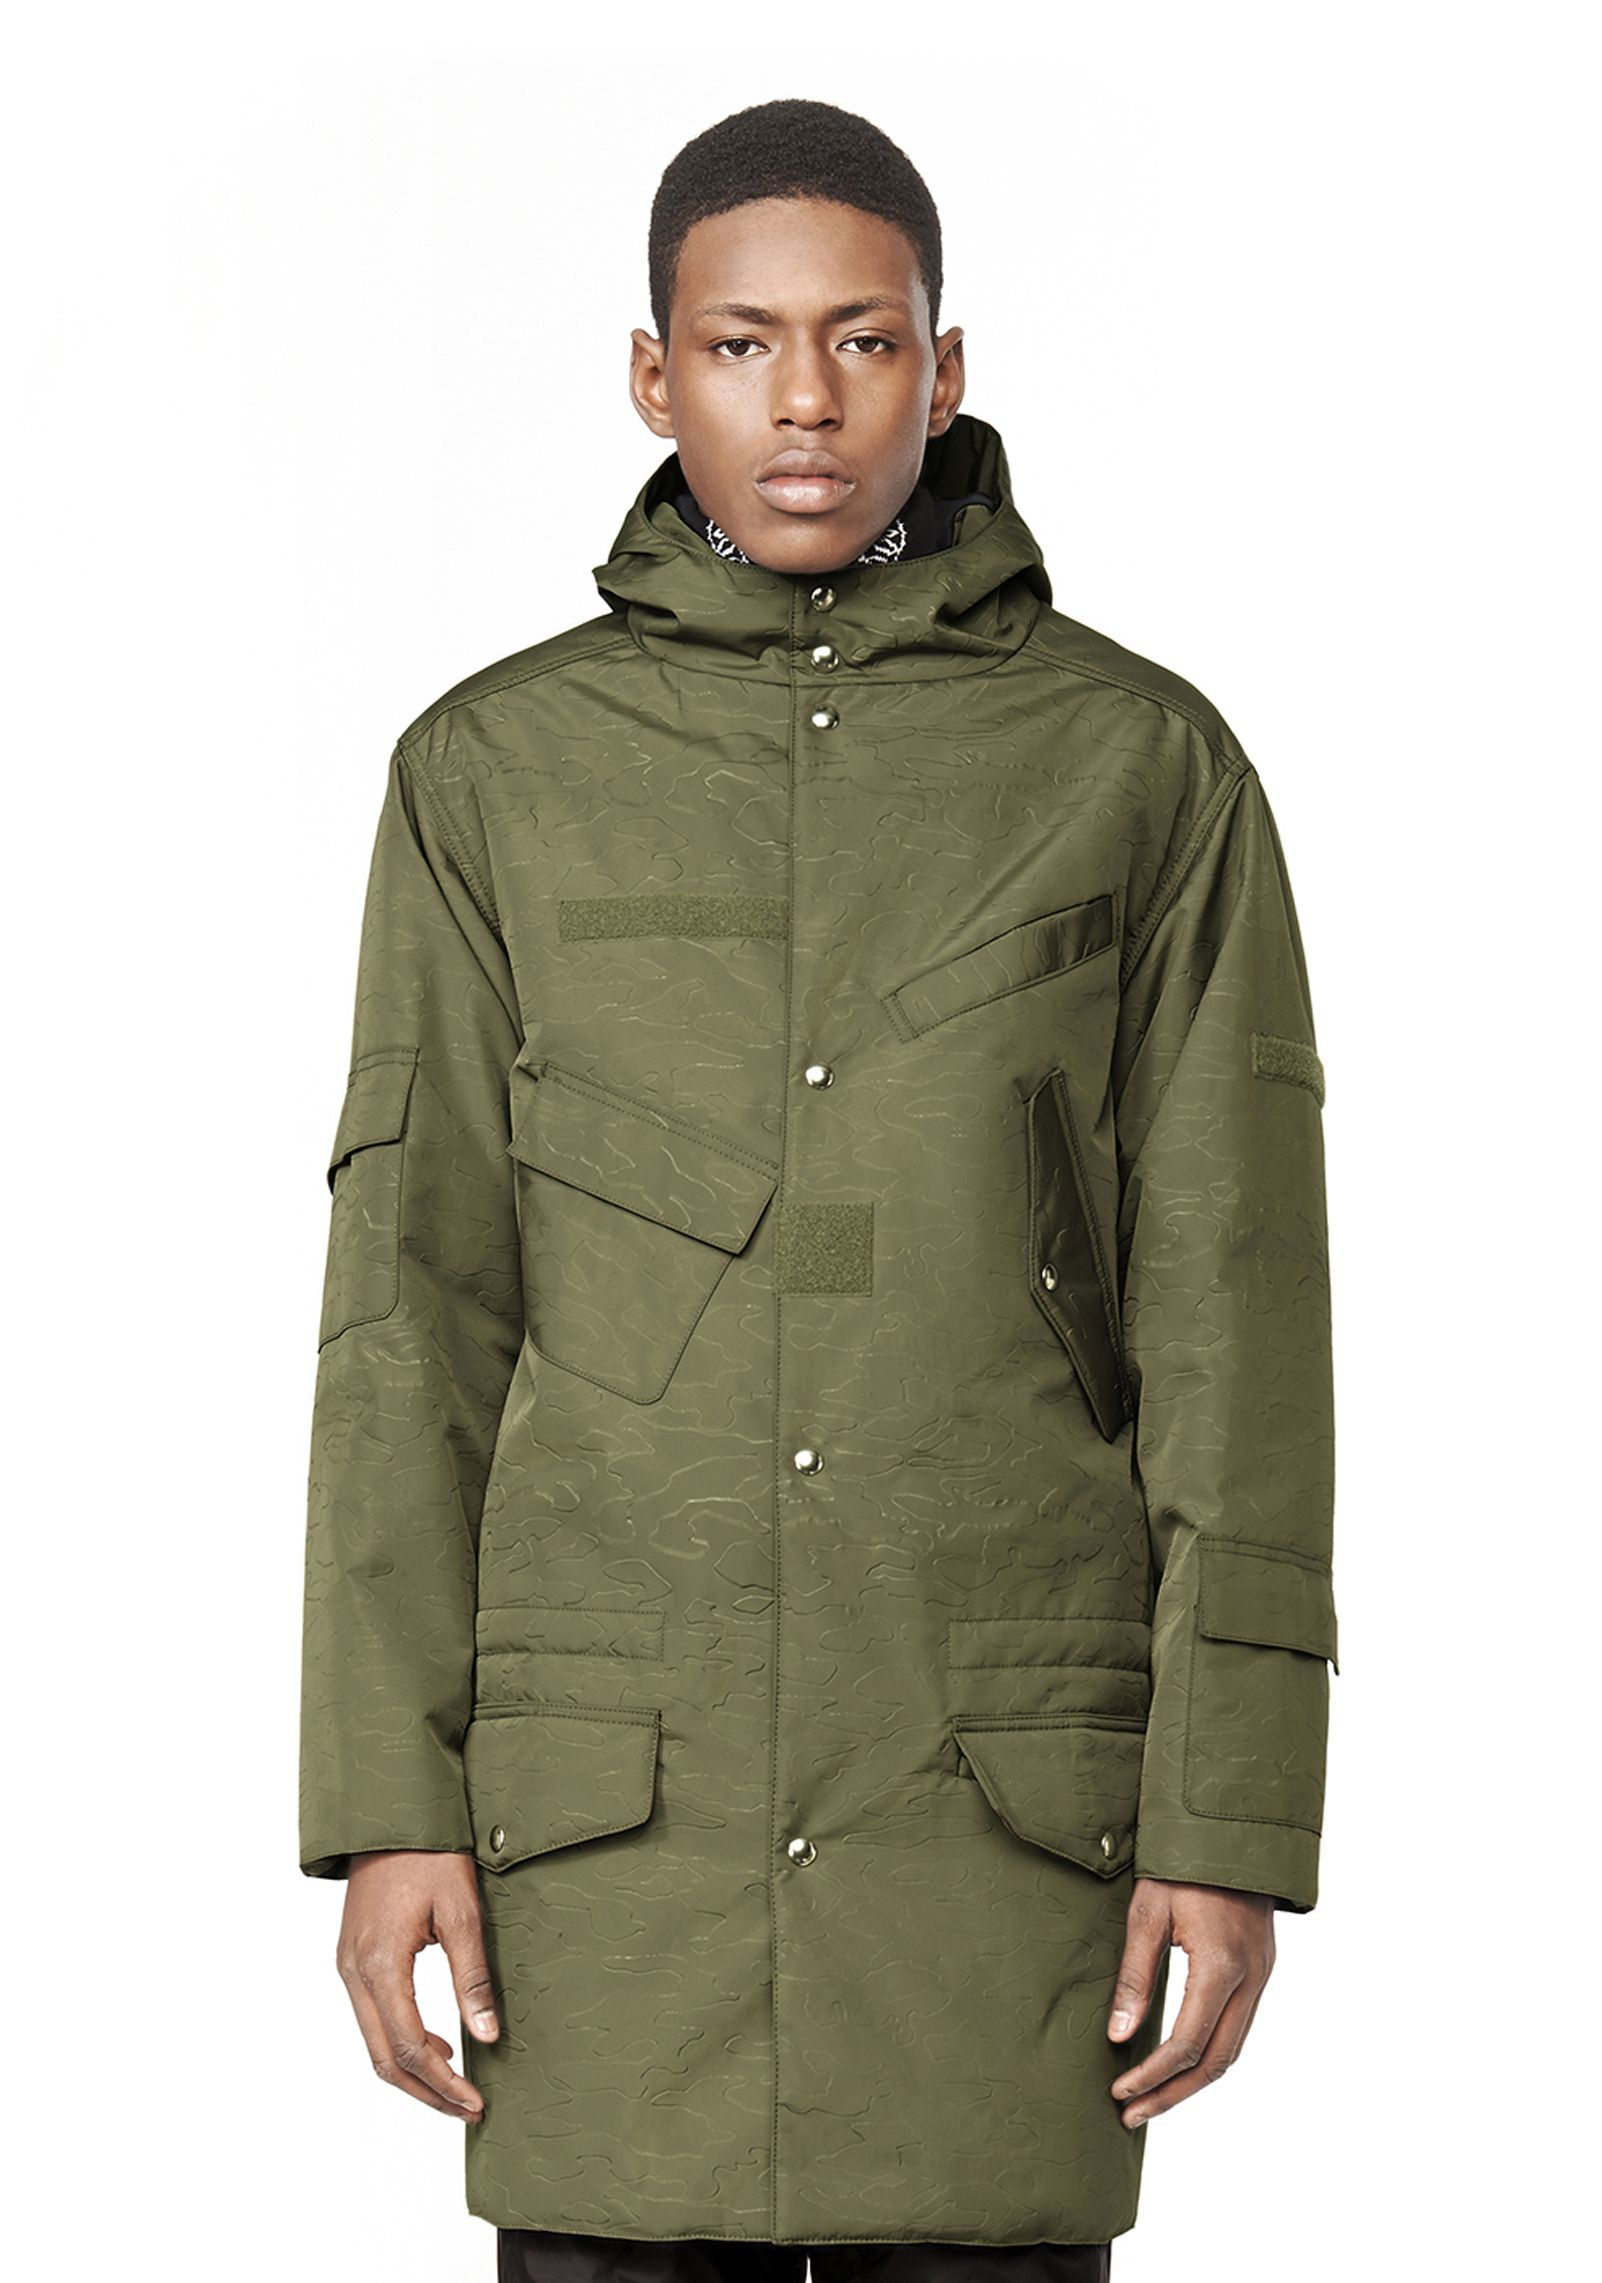 Alexander wang Hooded Military Parka in Green for Men | Lyst